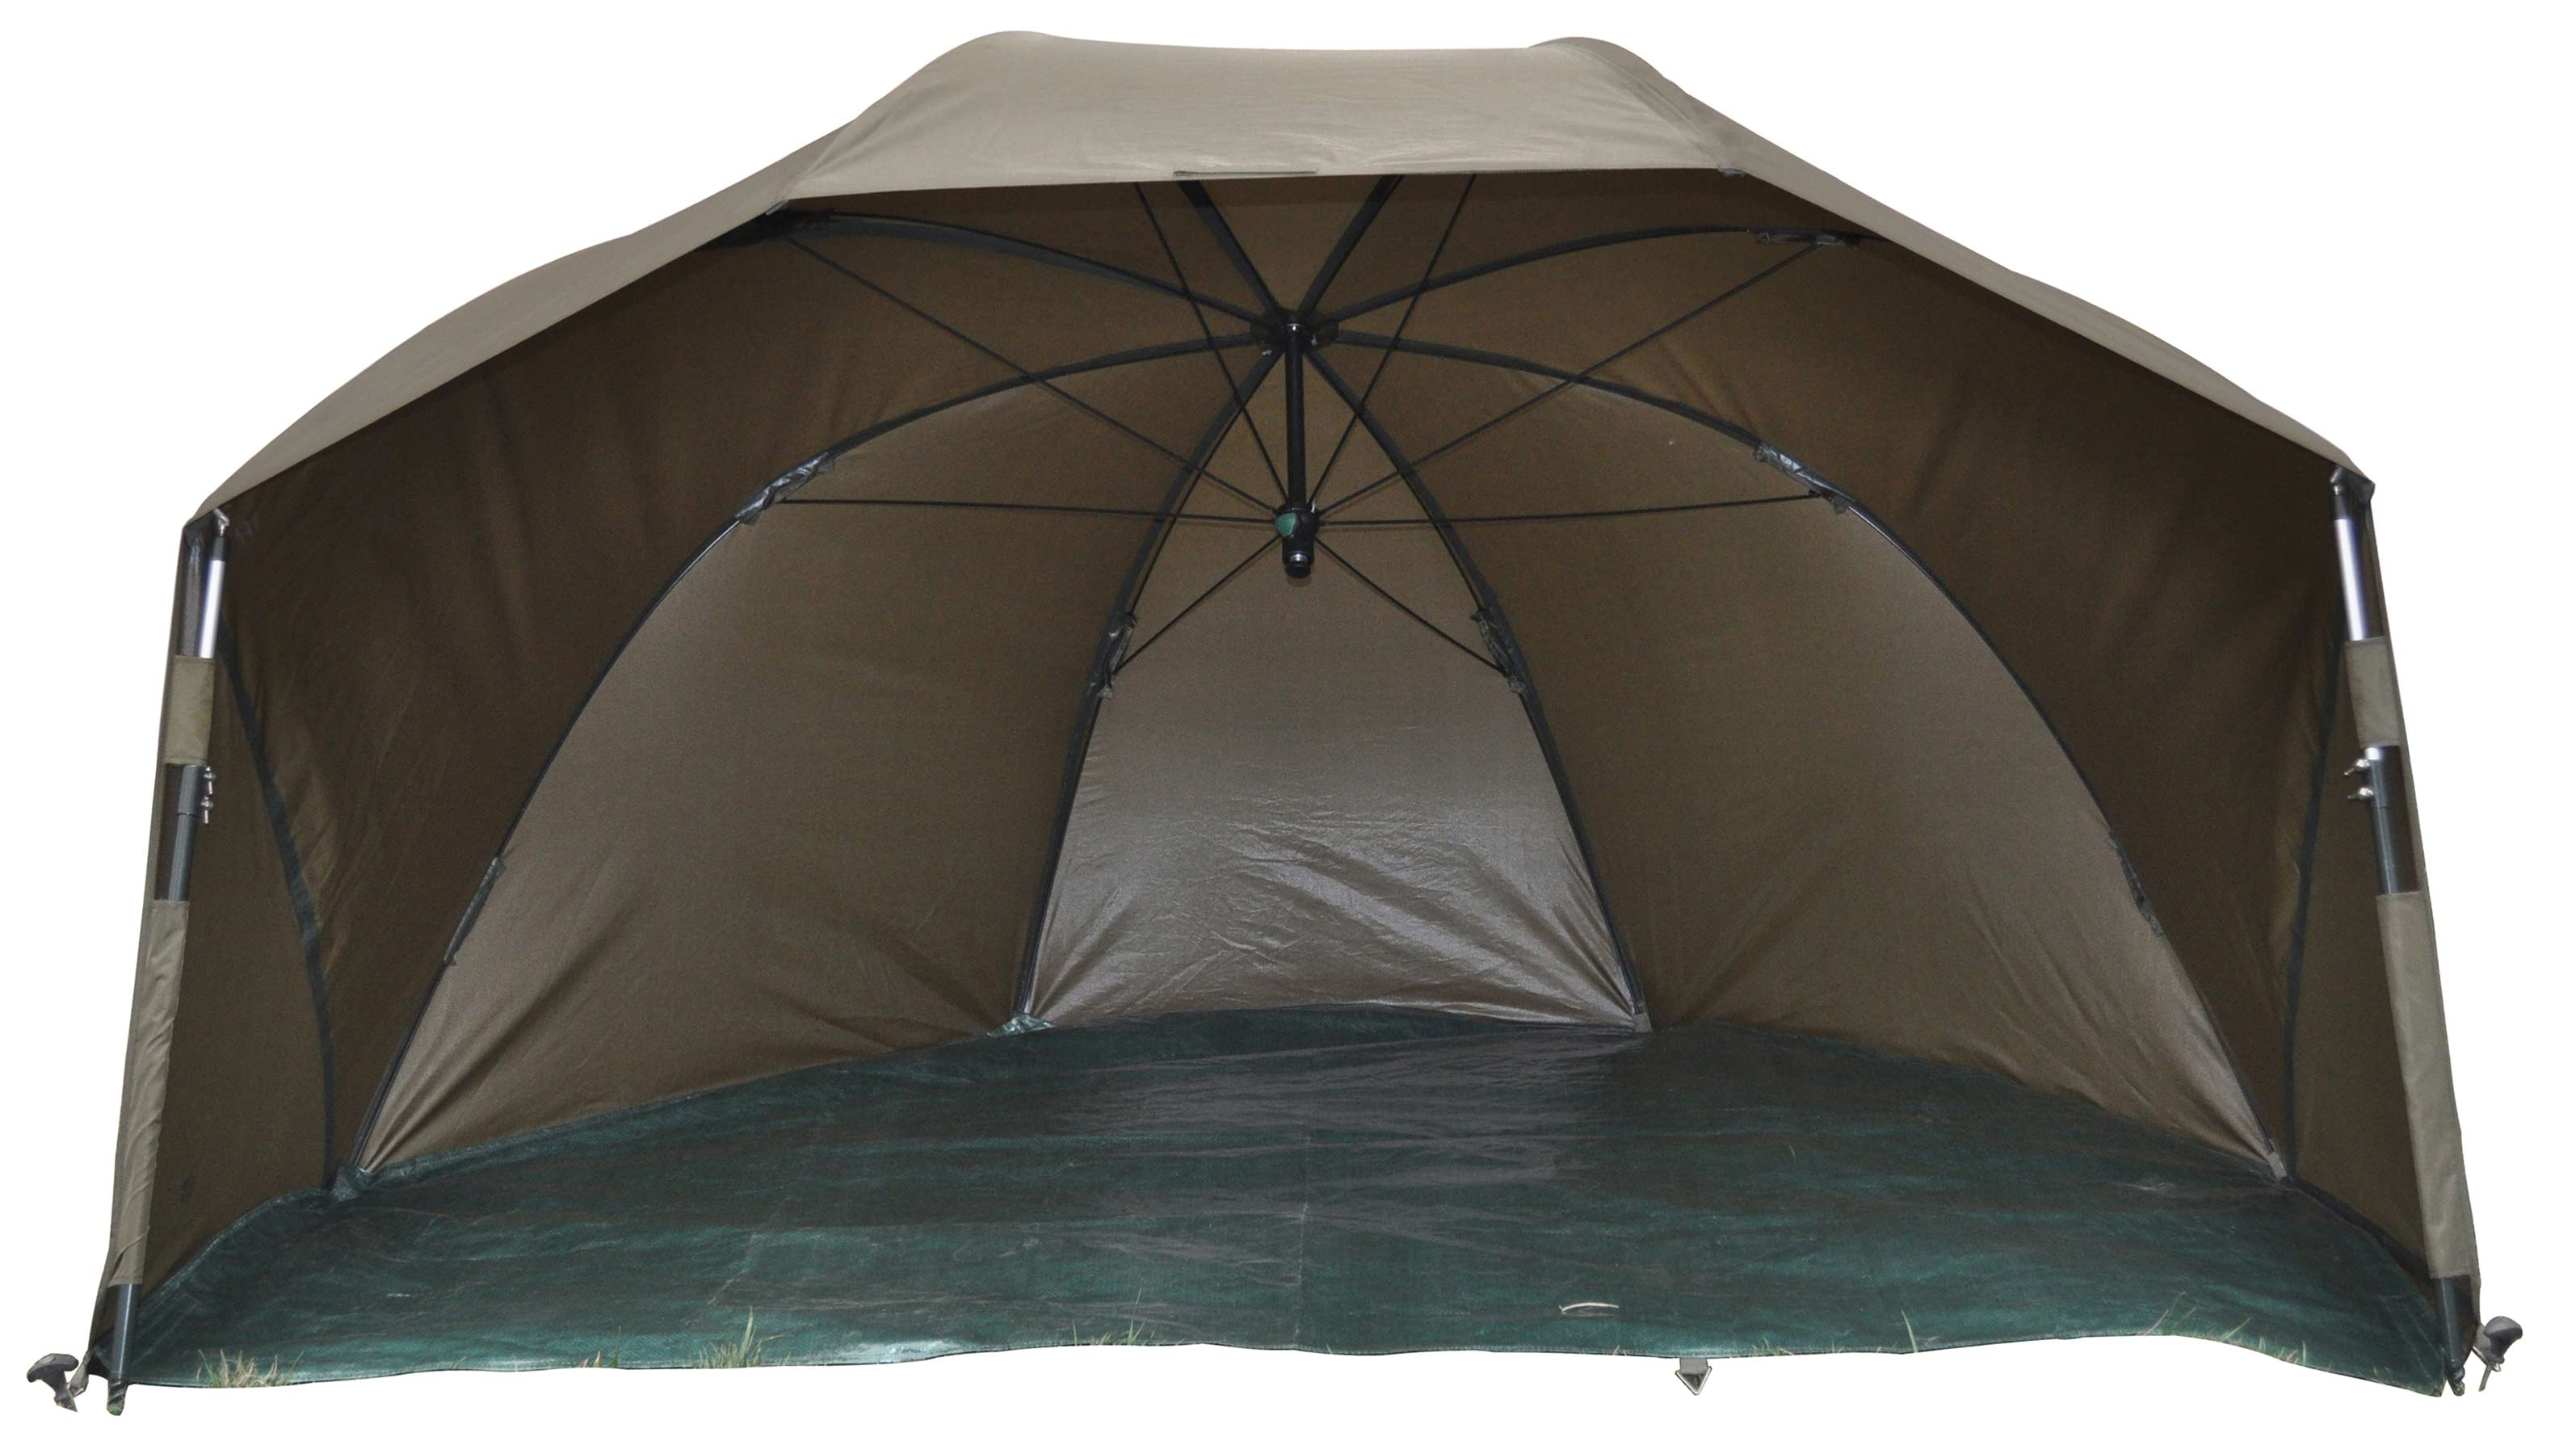 Angelschirm, ​Brolly MK-Angelsport Short Session Shelter 60, Bivvy, Brolly